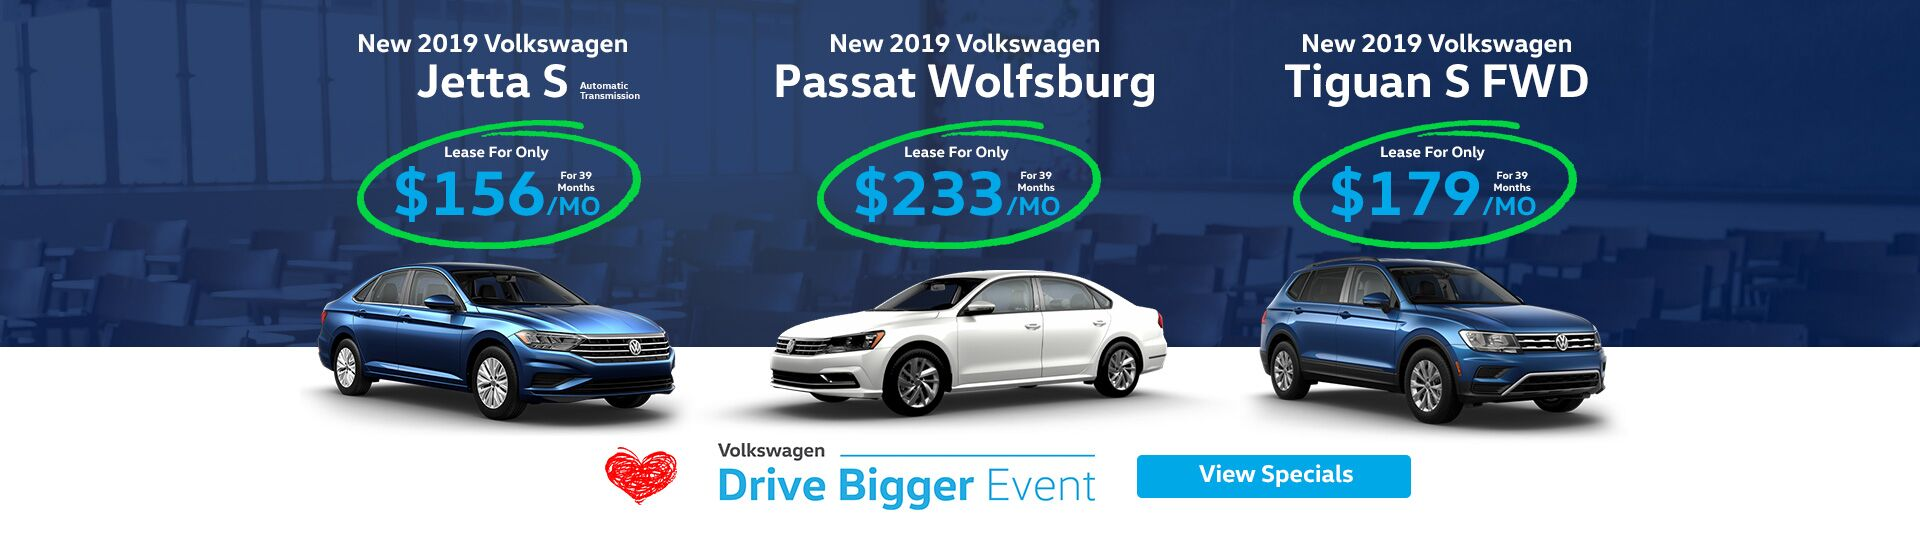 Buying And Maintaining A Car State Of California >> Ontario Volkswagen Volkswagen Dealer In Ontario Ca New Vw